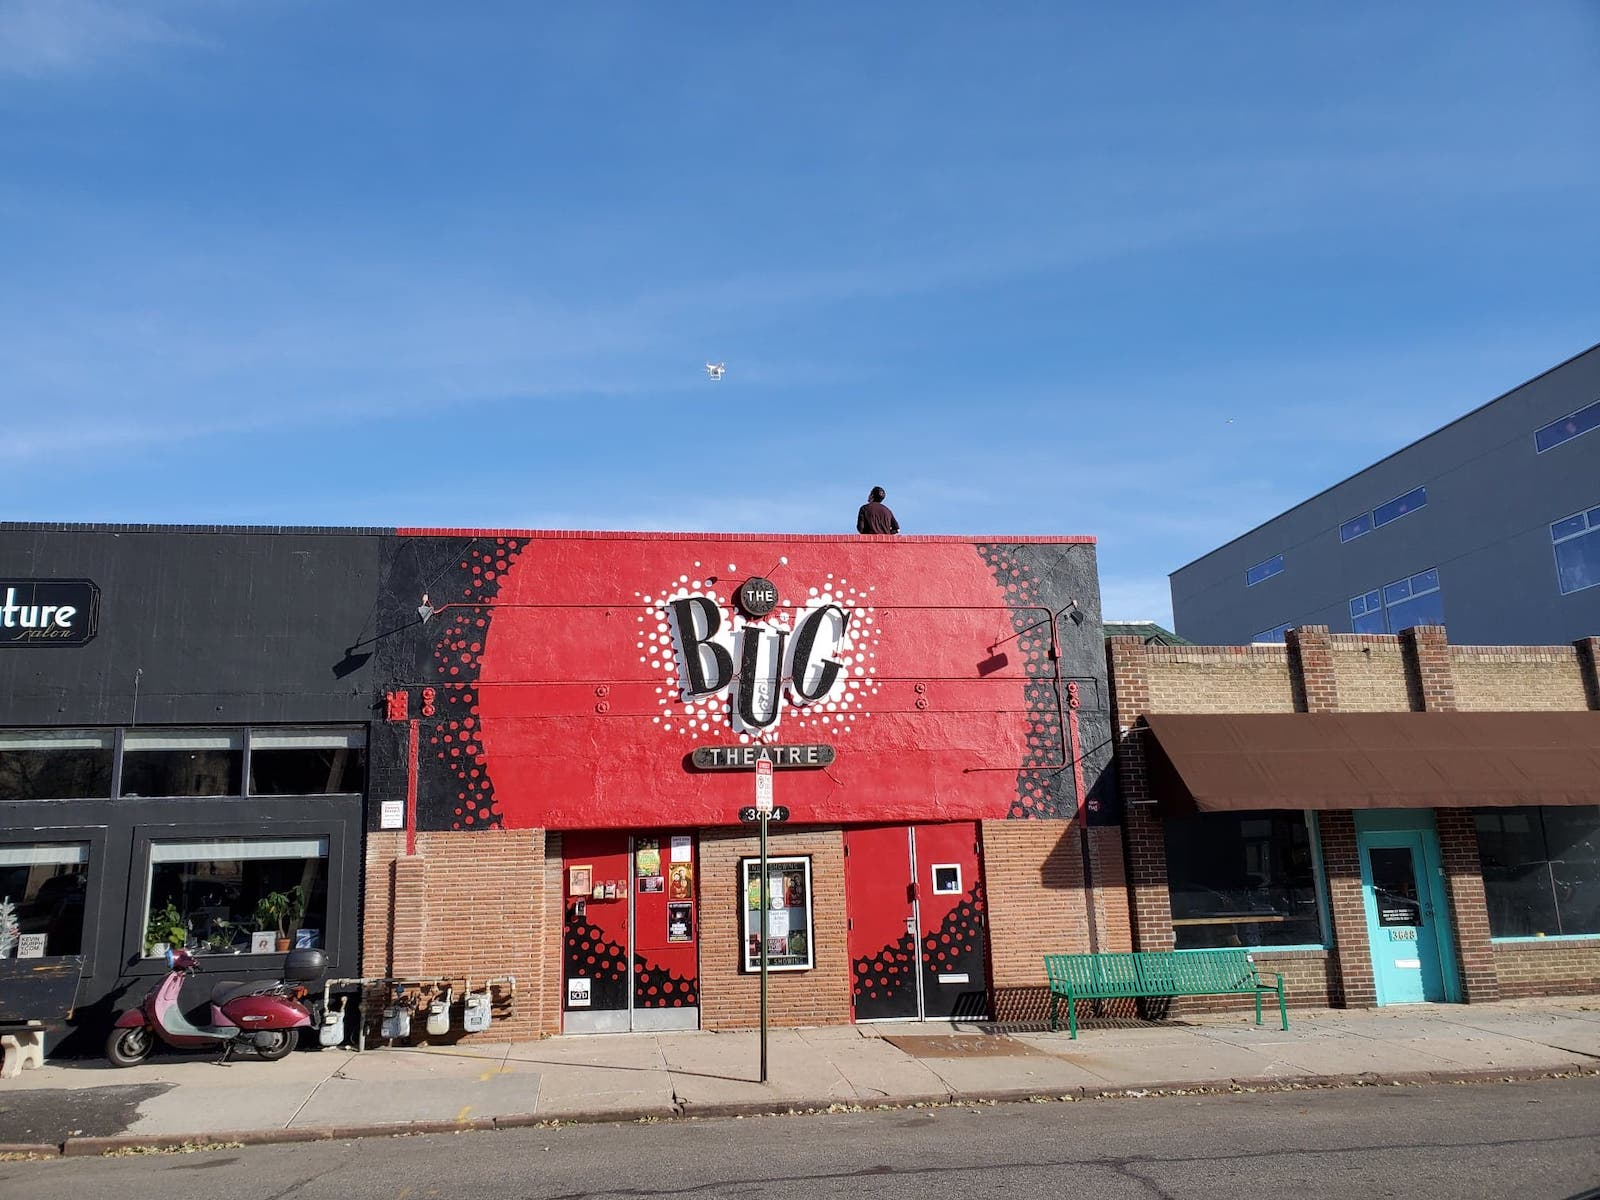 Image of the outside of The Bug Theatre in Denver, Colorado